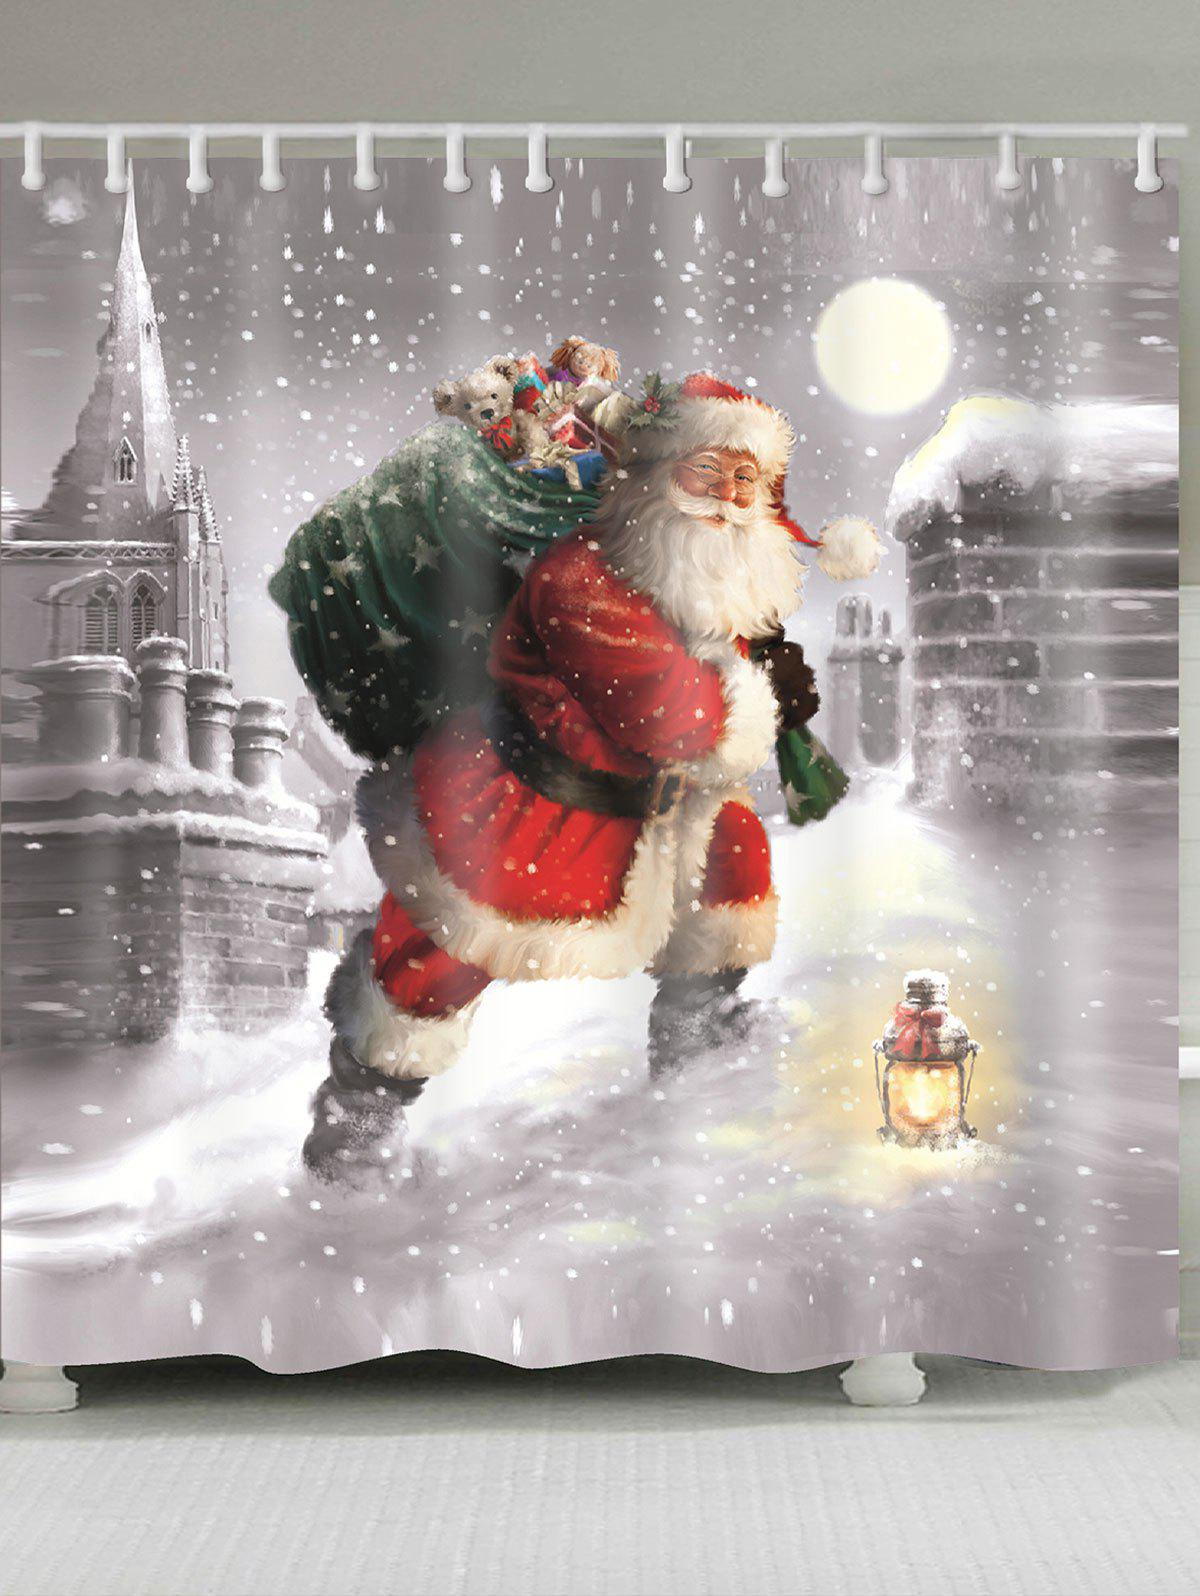 Snow and Santa Claus Printed Waterproof Shower Curtain snow and santa claus printed waterproof shower curtain